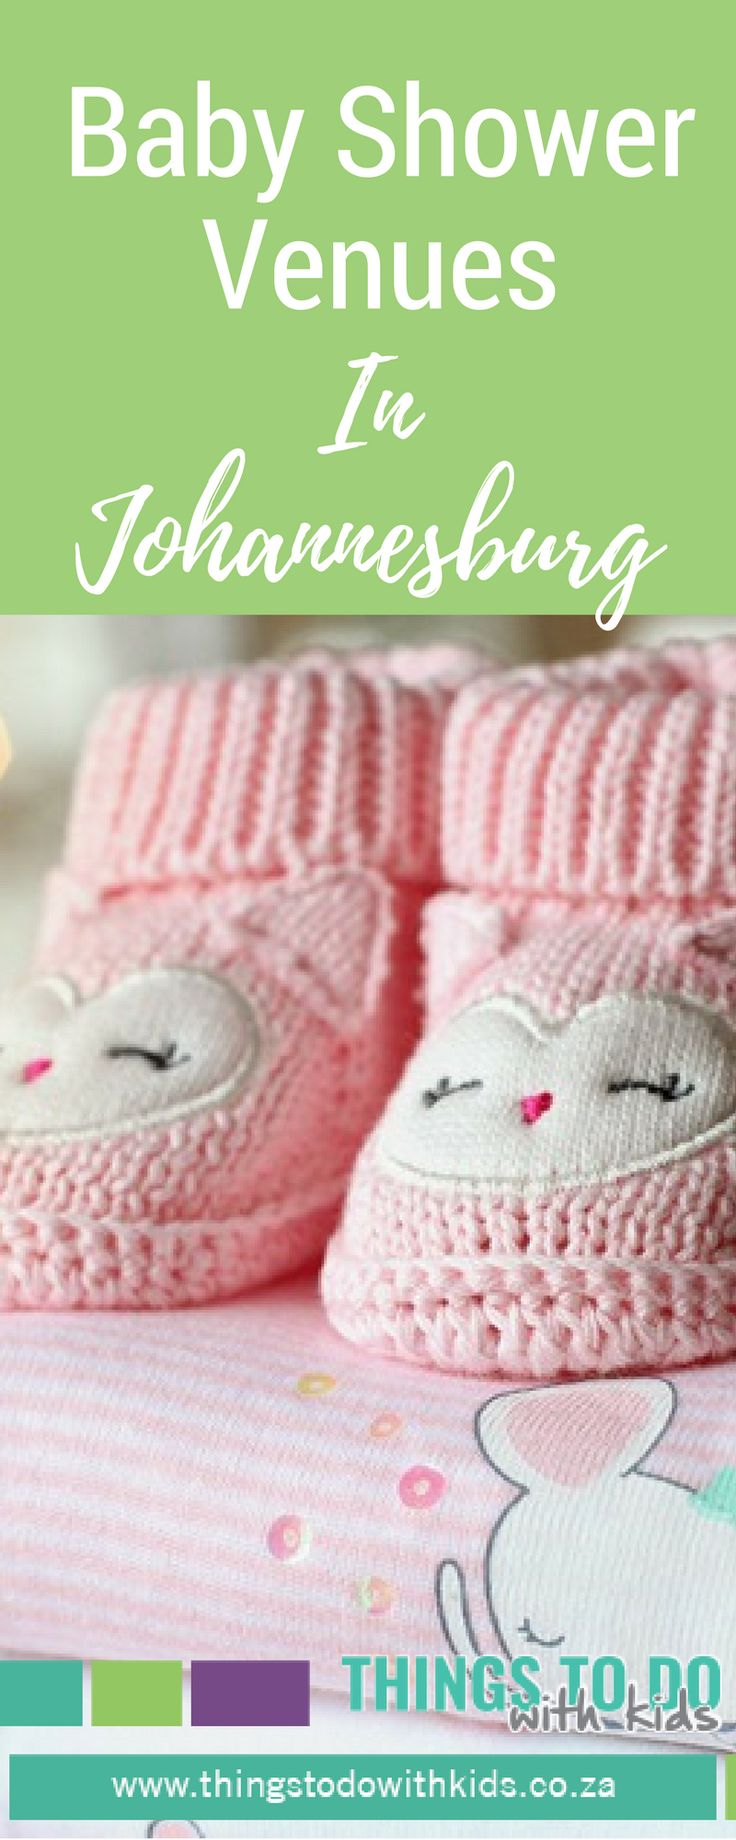 Baby Shower Venues Johannesburg | High tea venues Johannesburg | Stork Tea Party Venues | Things to do with Kids | Activities & Excursions